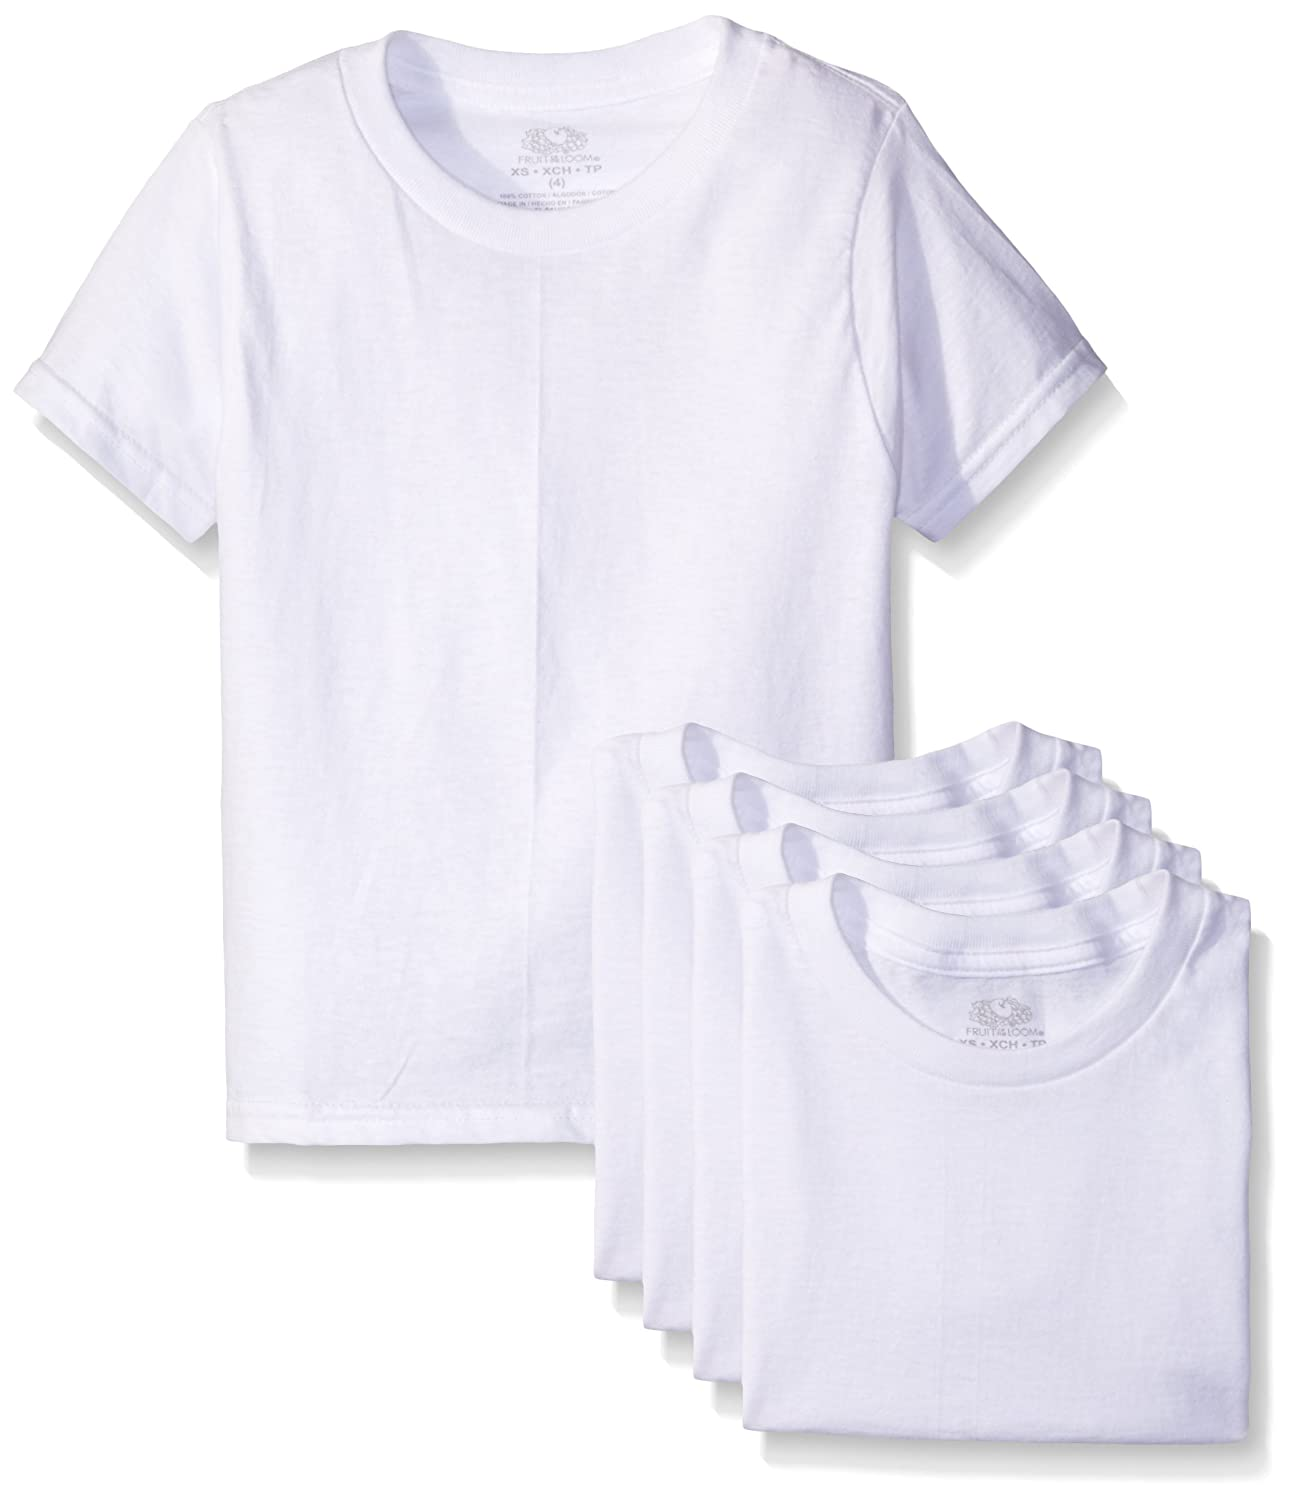 100178d1b Amazon.com: Fruit of the Loom Boys' Cotton White T Shirt: Clothing